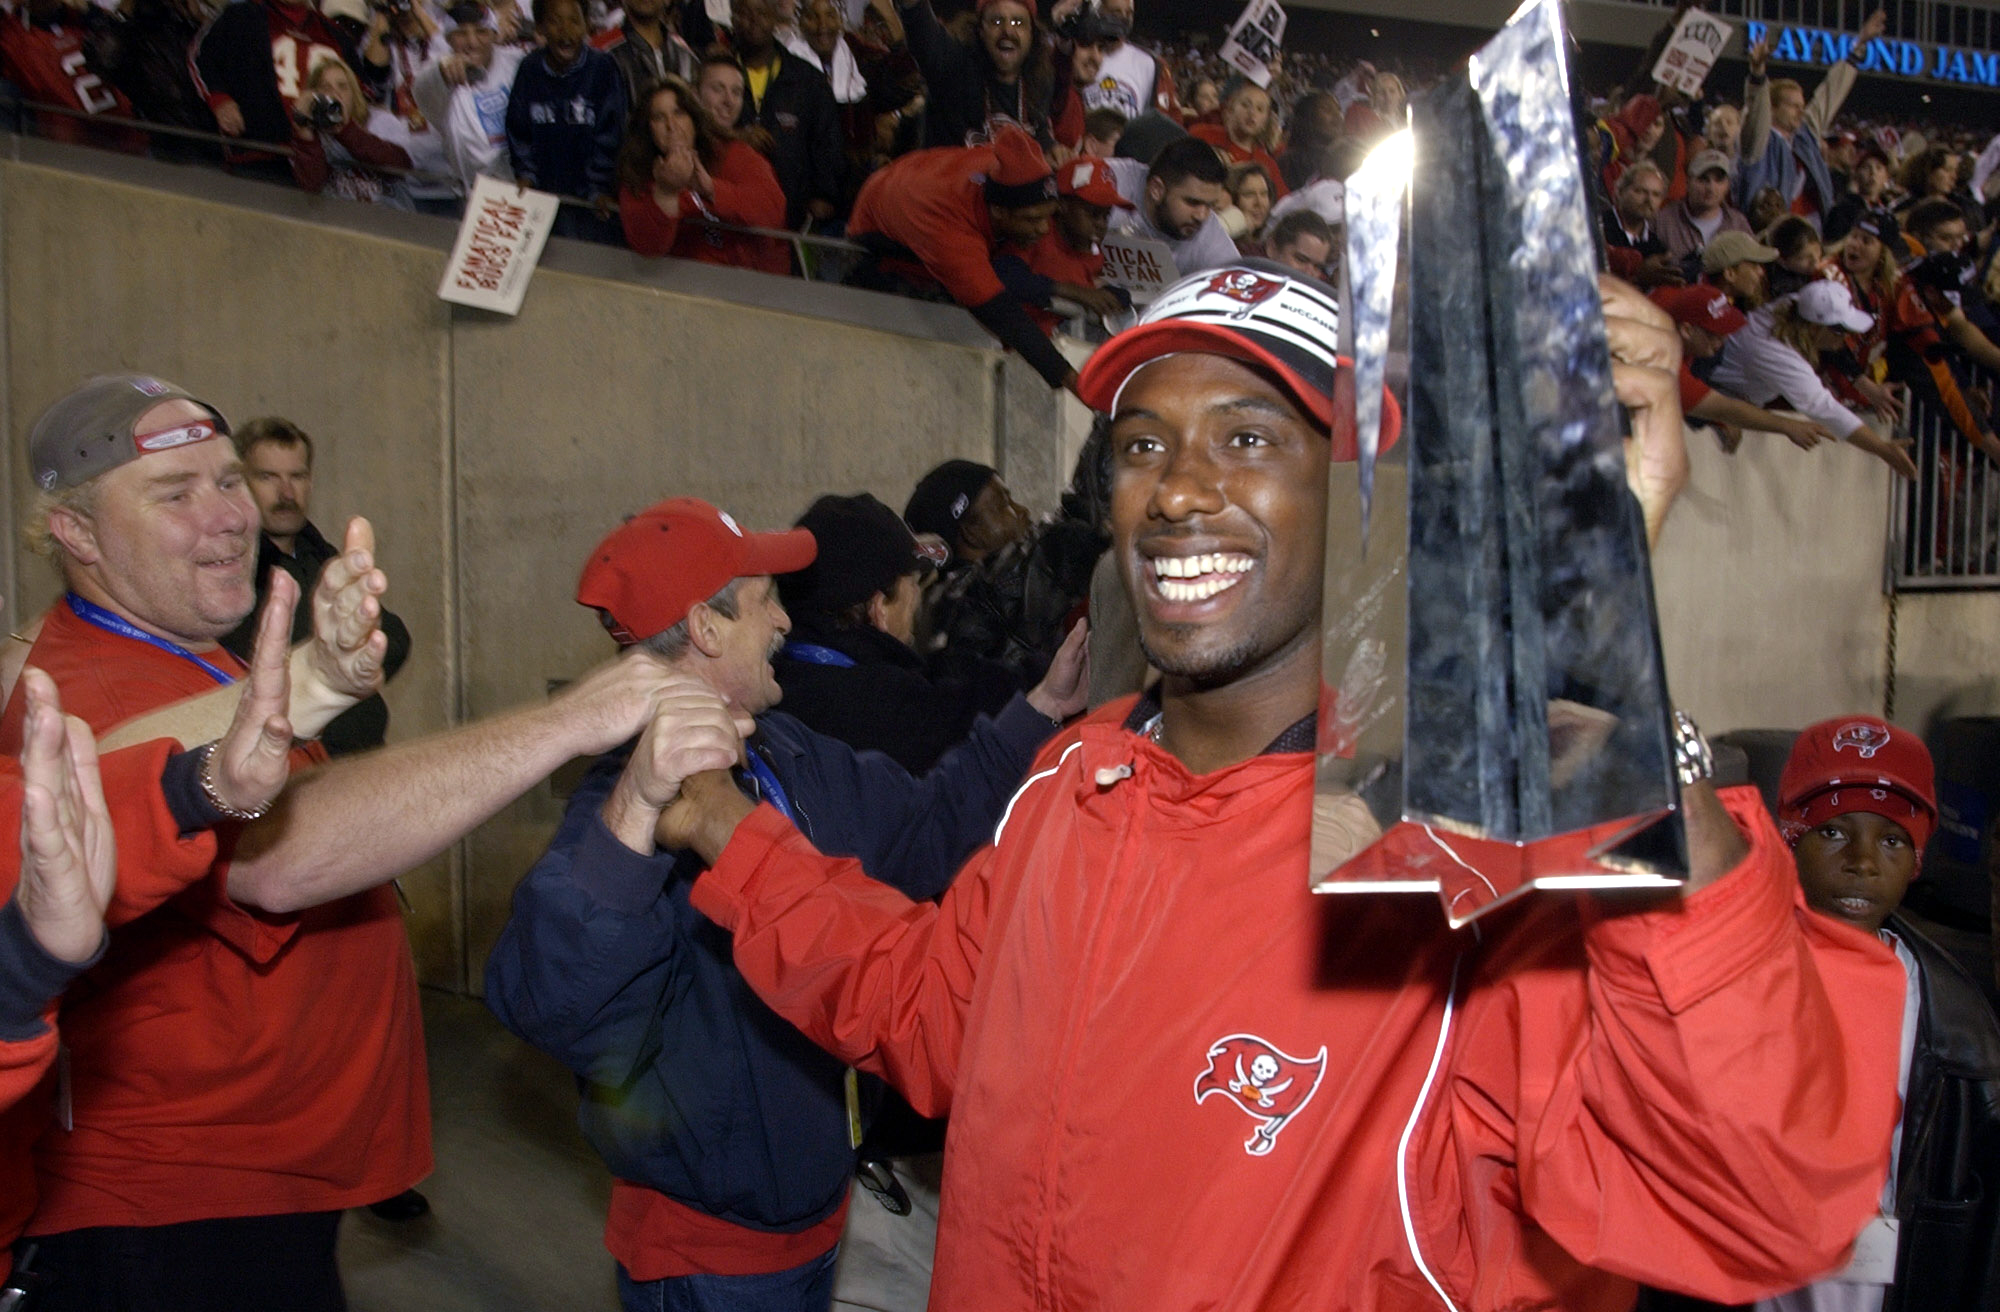 FILE - In this Jan. 27, 2003, file photo, Tampa Bay Buccaneers' Dexter Jackson holds his Super Bowl MVP trophy as he high-fives fans during a victory celebration at Raymond James Stadium in Tampa, Fla. Jackson intercepted two passes in the first half agai